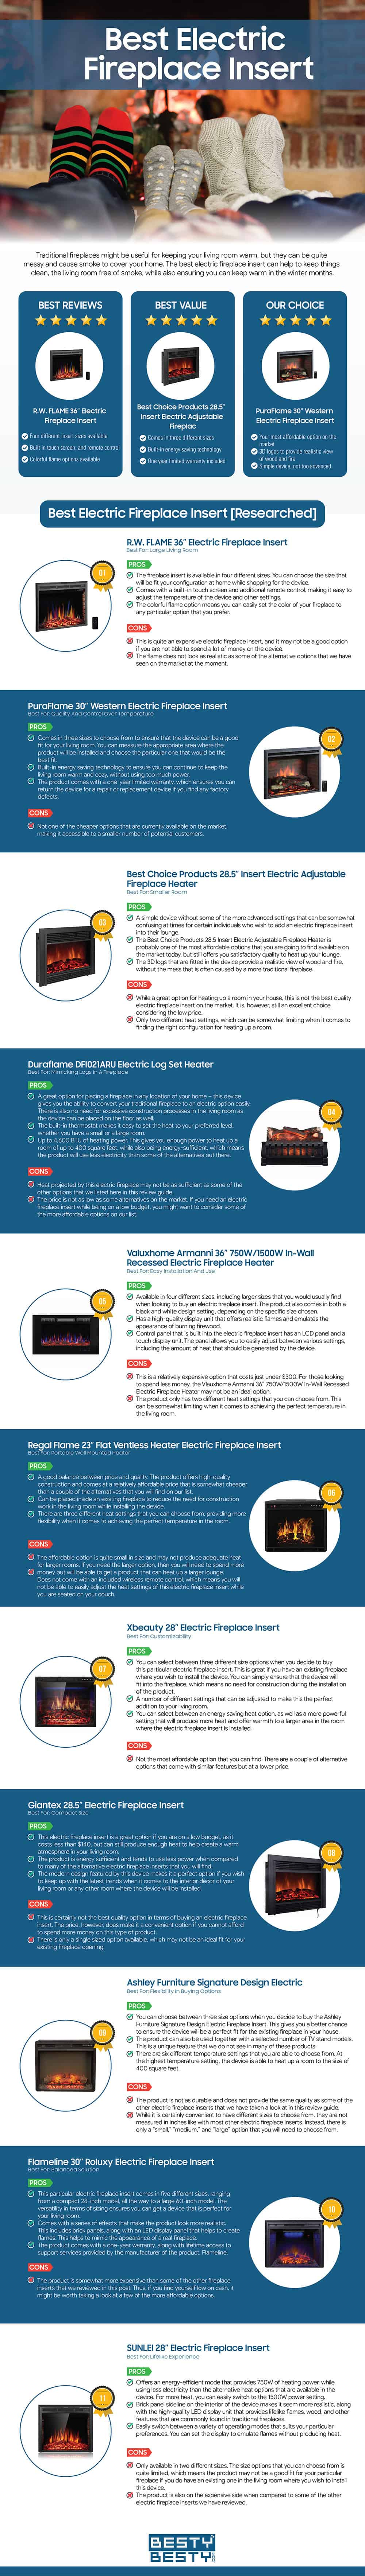 Best Electric Fireplace Insert infographic by bestybesty.com